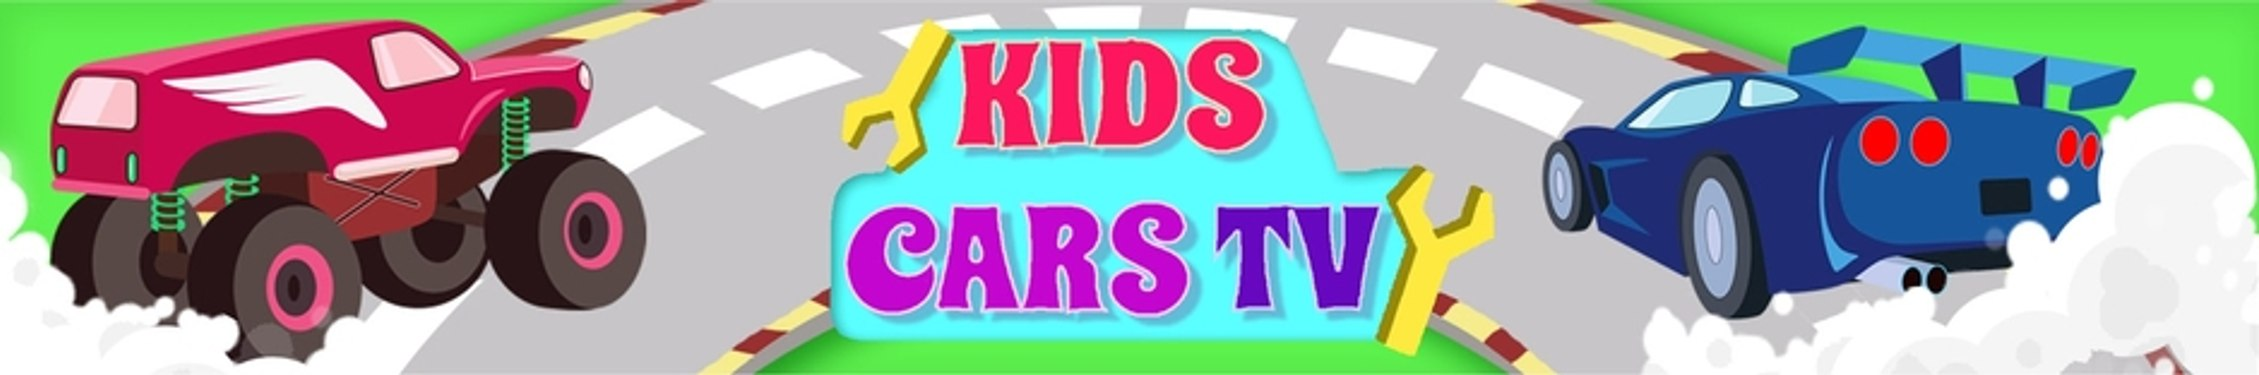 Kids Cars TV